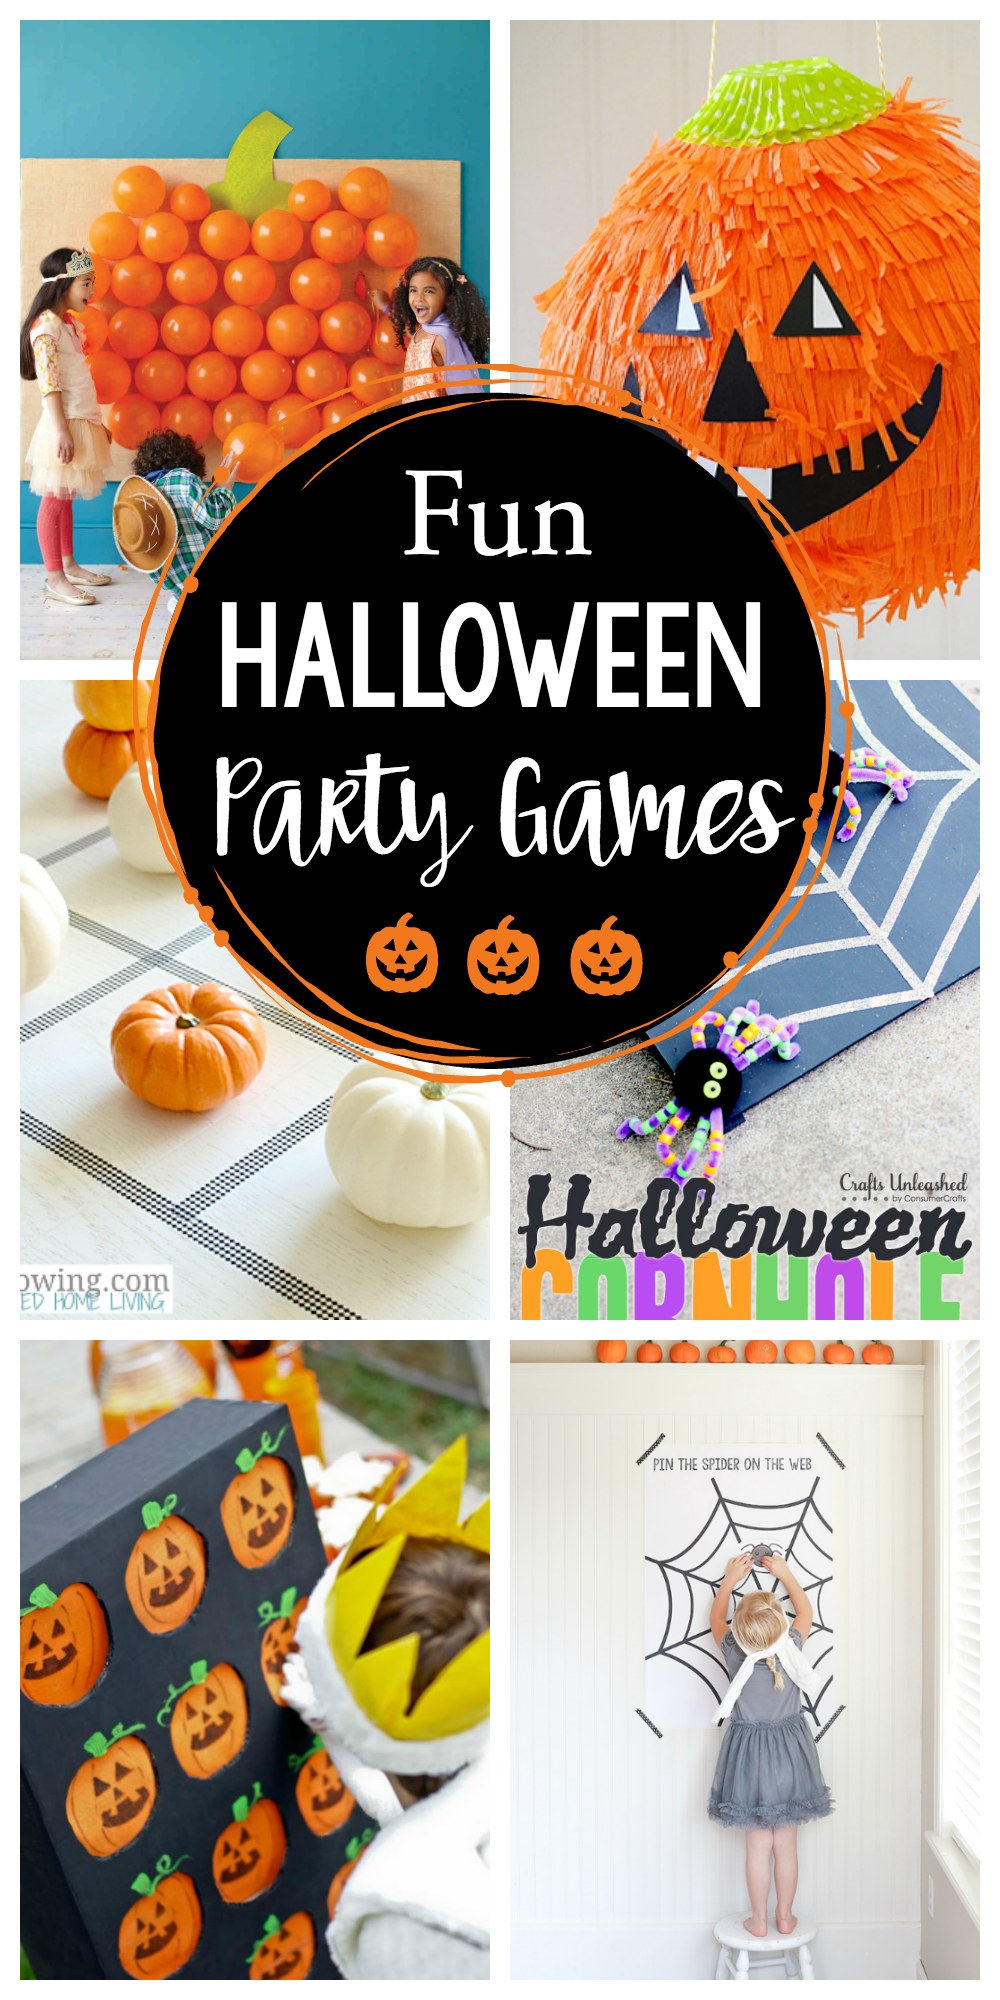 Fun Halloween Party Games for Kids-These great Halloween games are fun ideas to play at any Halloween party for kids #halloween #kids #games #party #halloweenparty